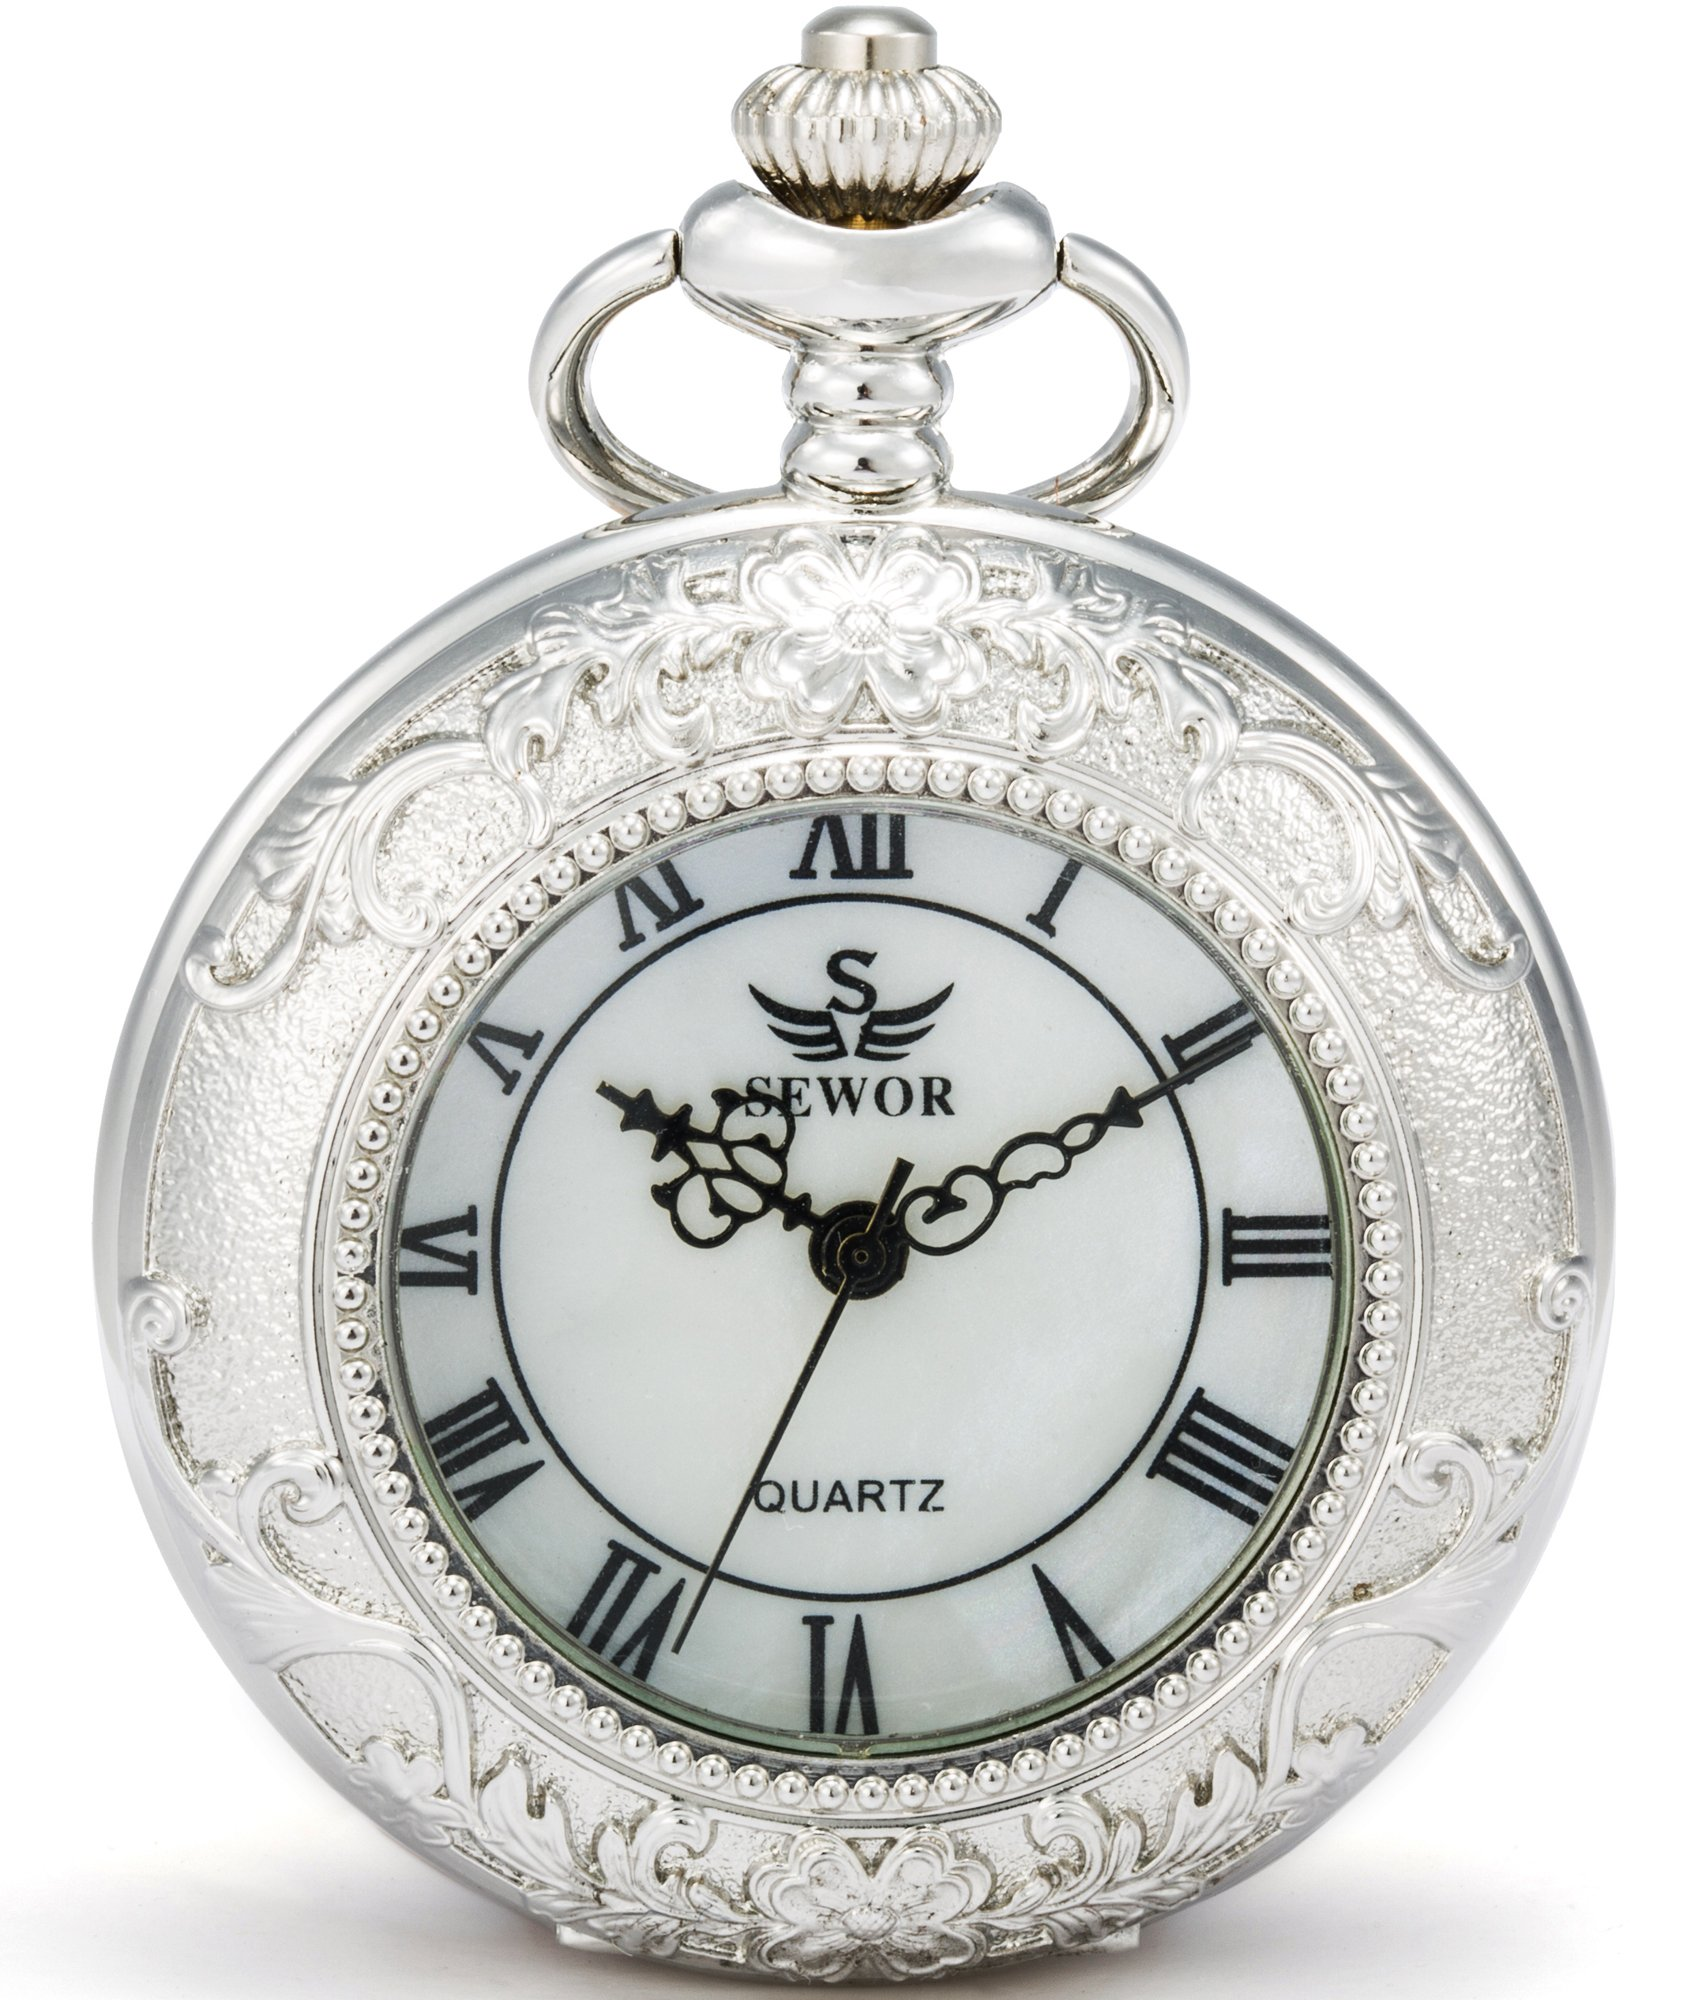 SEWOR Quartz Pocket Watch Shell Dial Magnifier Case With Two Type Chain (Leather+Metal) (Sliver)